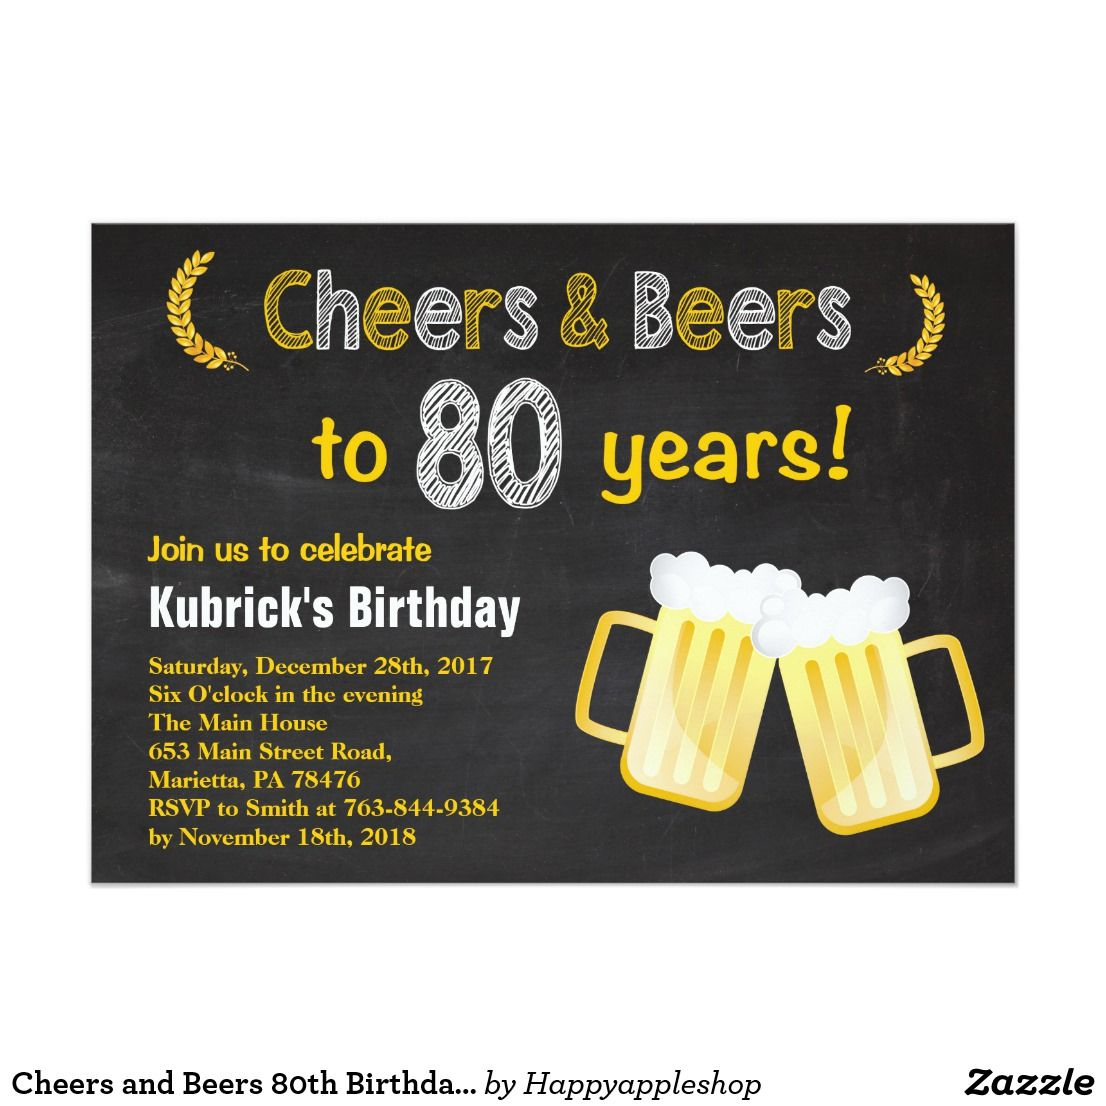 Cheers and Beers 80th Birthday Invitation